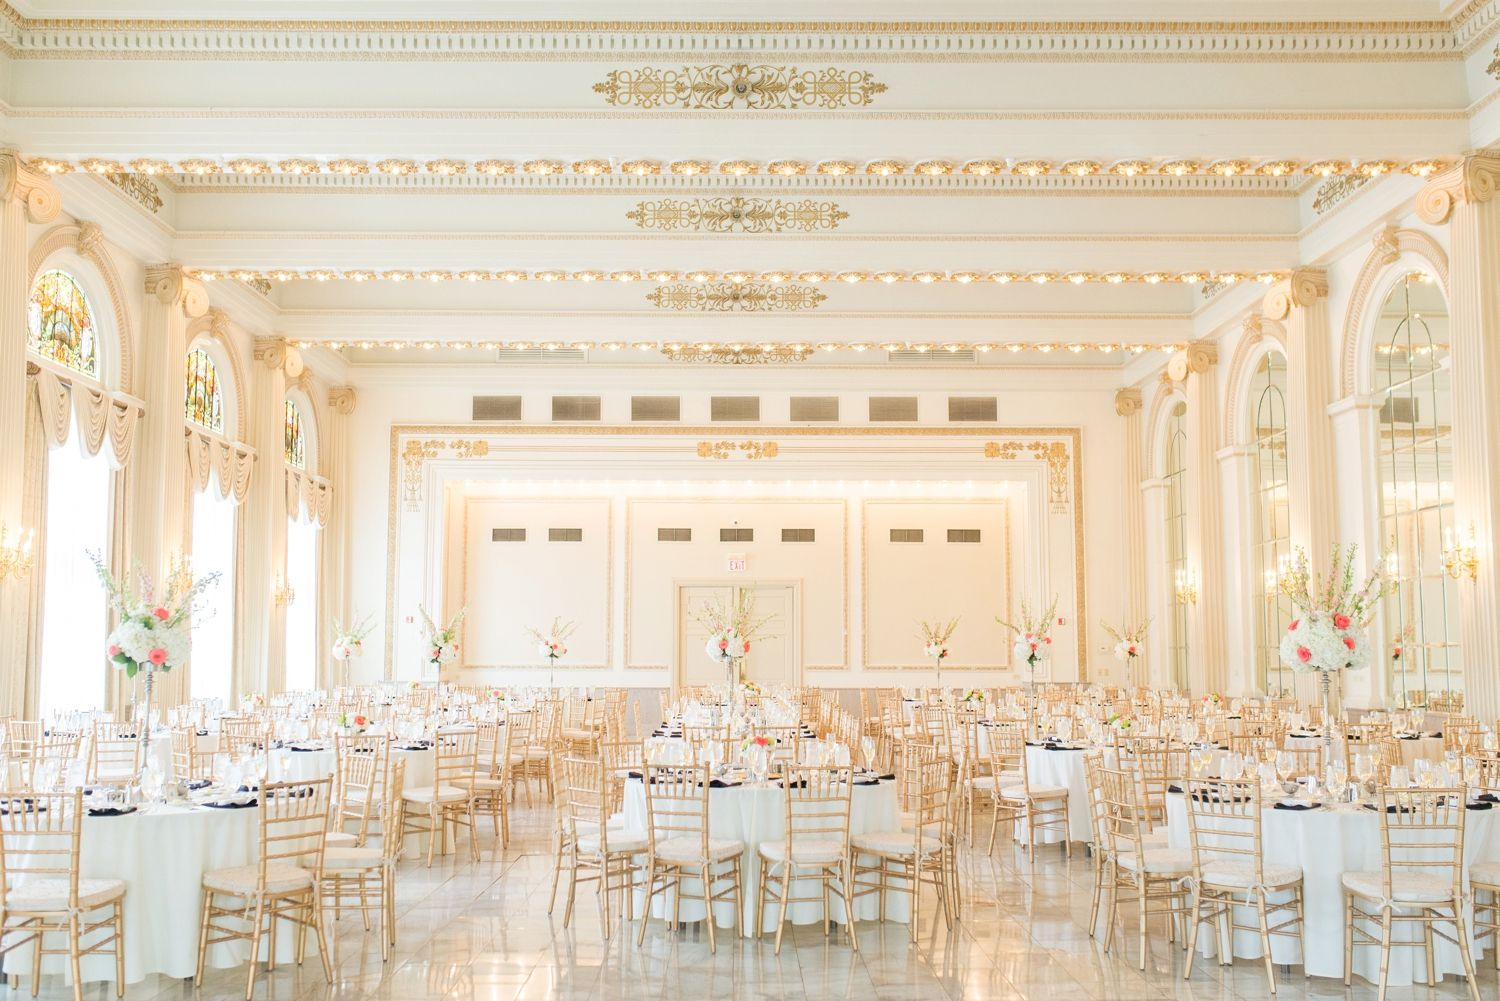 How A Reception Looks In The Westin Ballroom